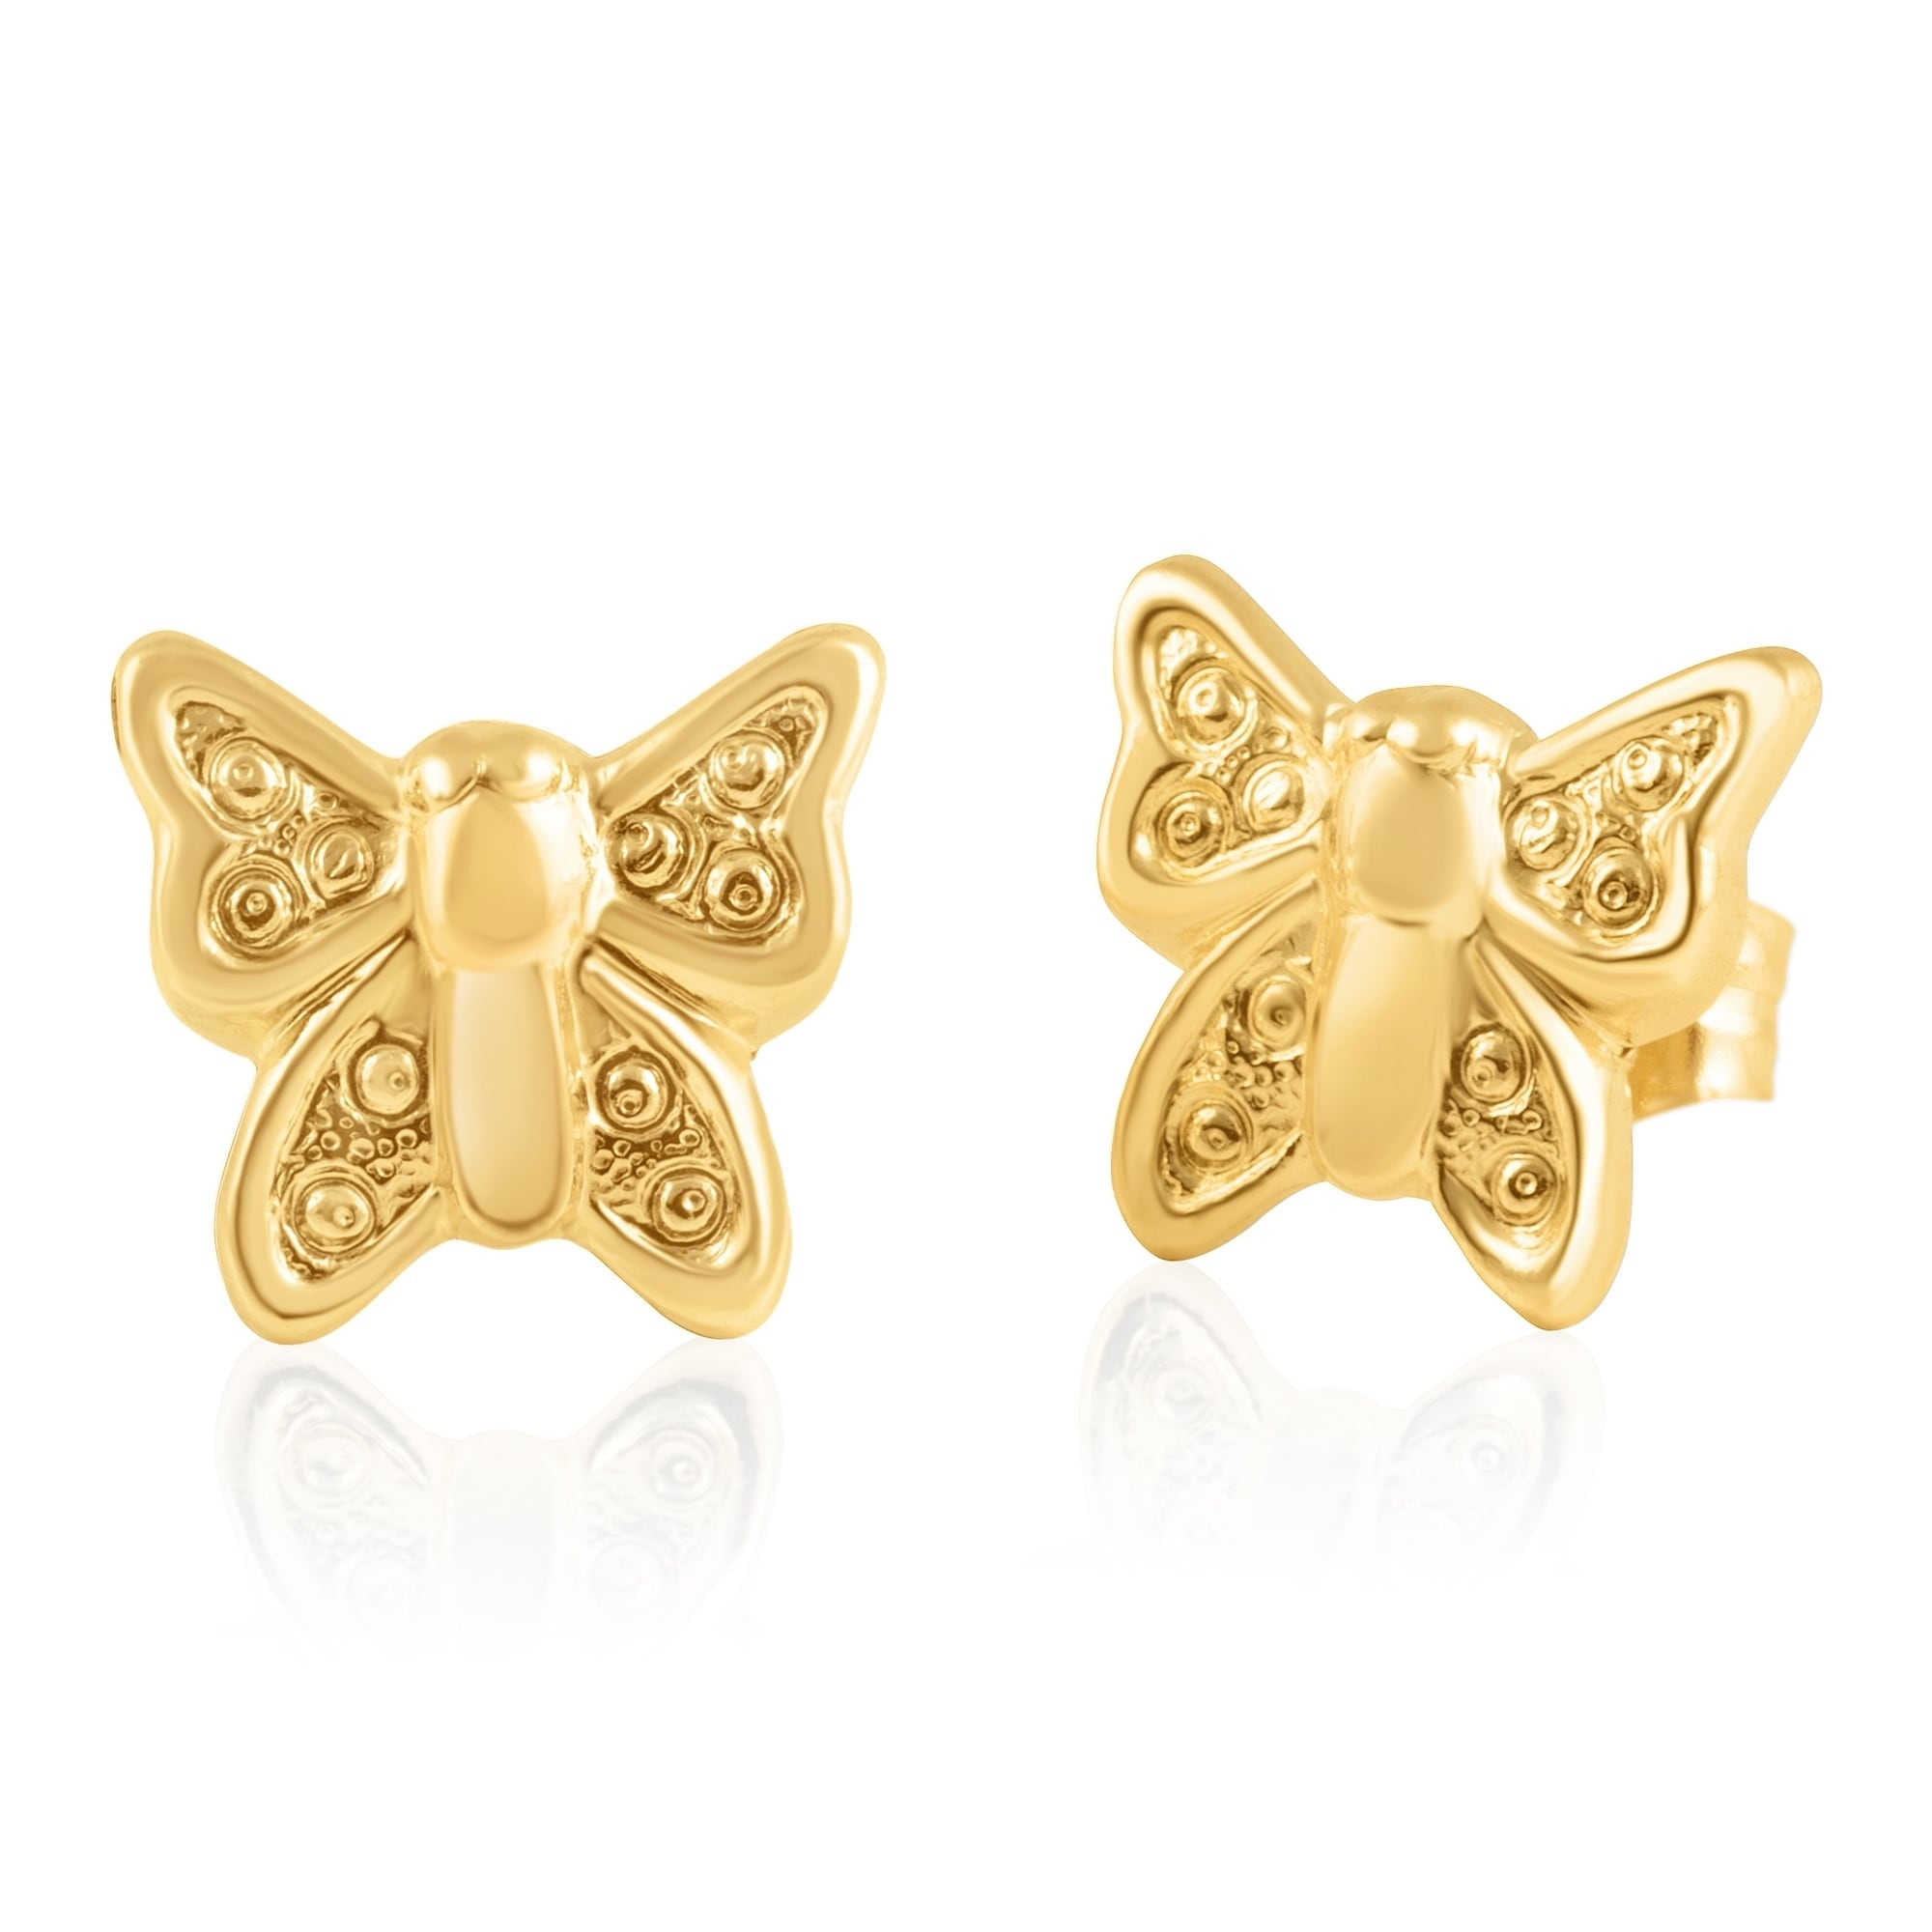 a83f7df55 Shop 14KT Yellow Gold Teddy Bear Children's and Baby Girls Stud Earrings -  Charming with Secure Screw Back Safety Closure - Free Shipping Today -  Overstock ...